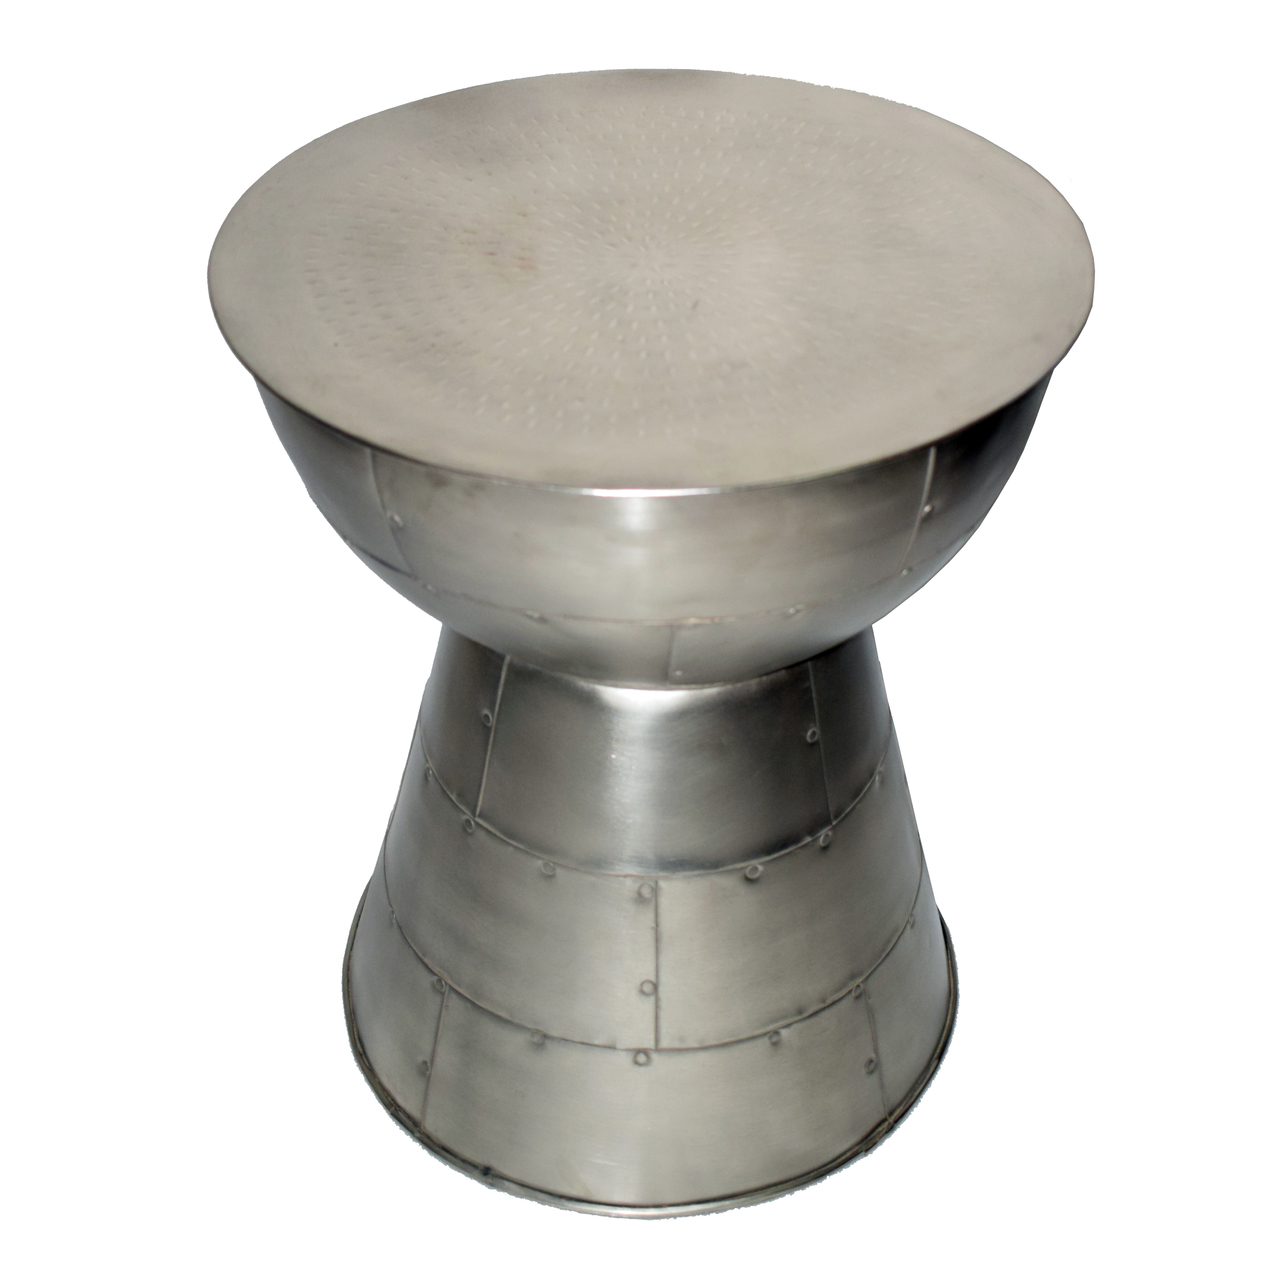 mushroom shaped silver accent table cairo metal silvered childrens garden furniture red cabinet antique drop leaf kitchen fred meyer resin coffee with drawers ikea wine stoppers